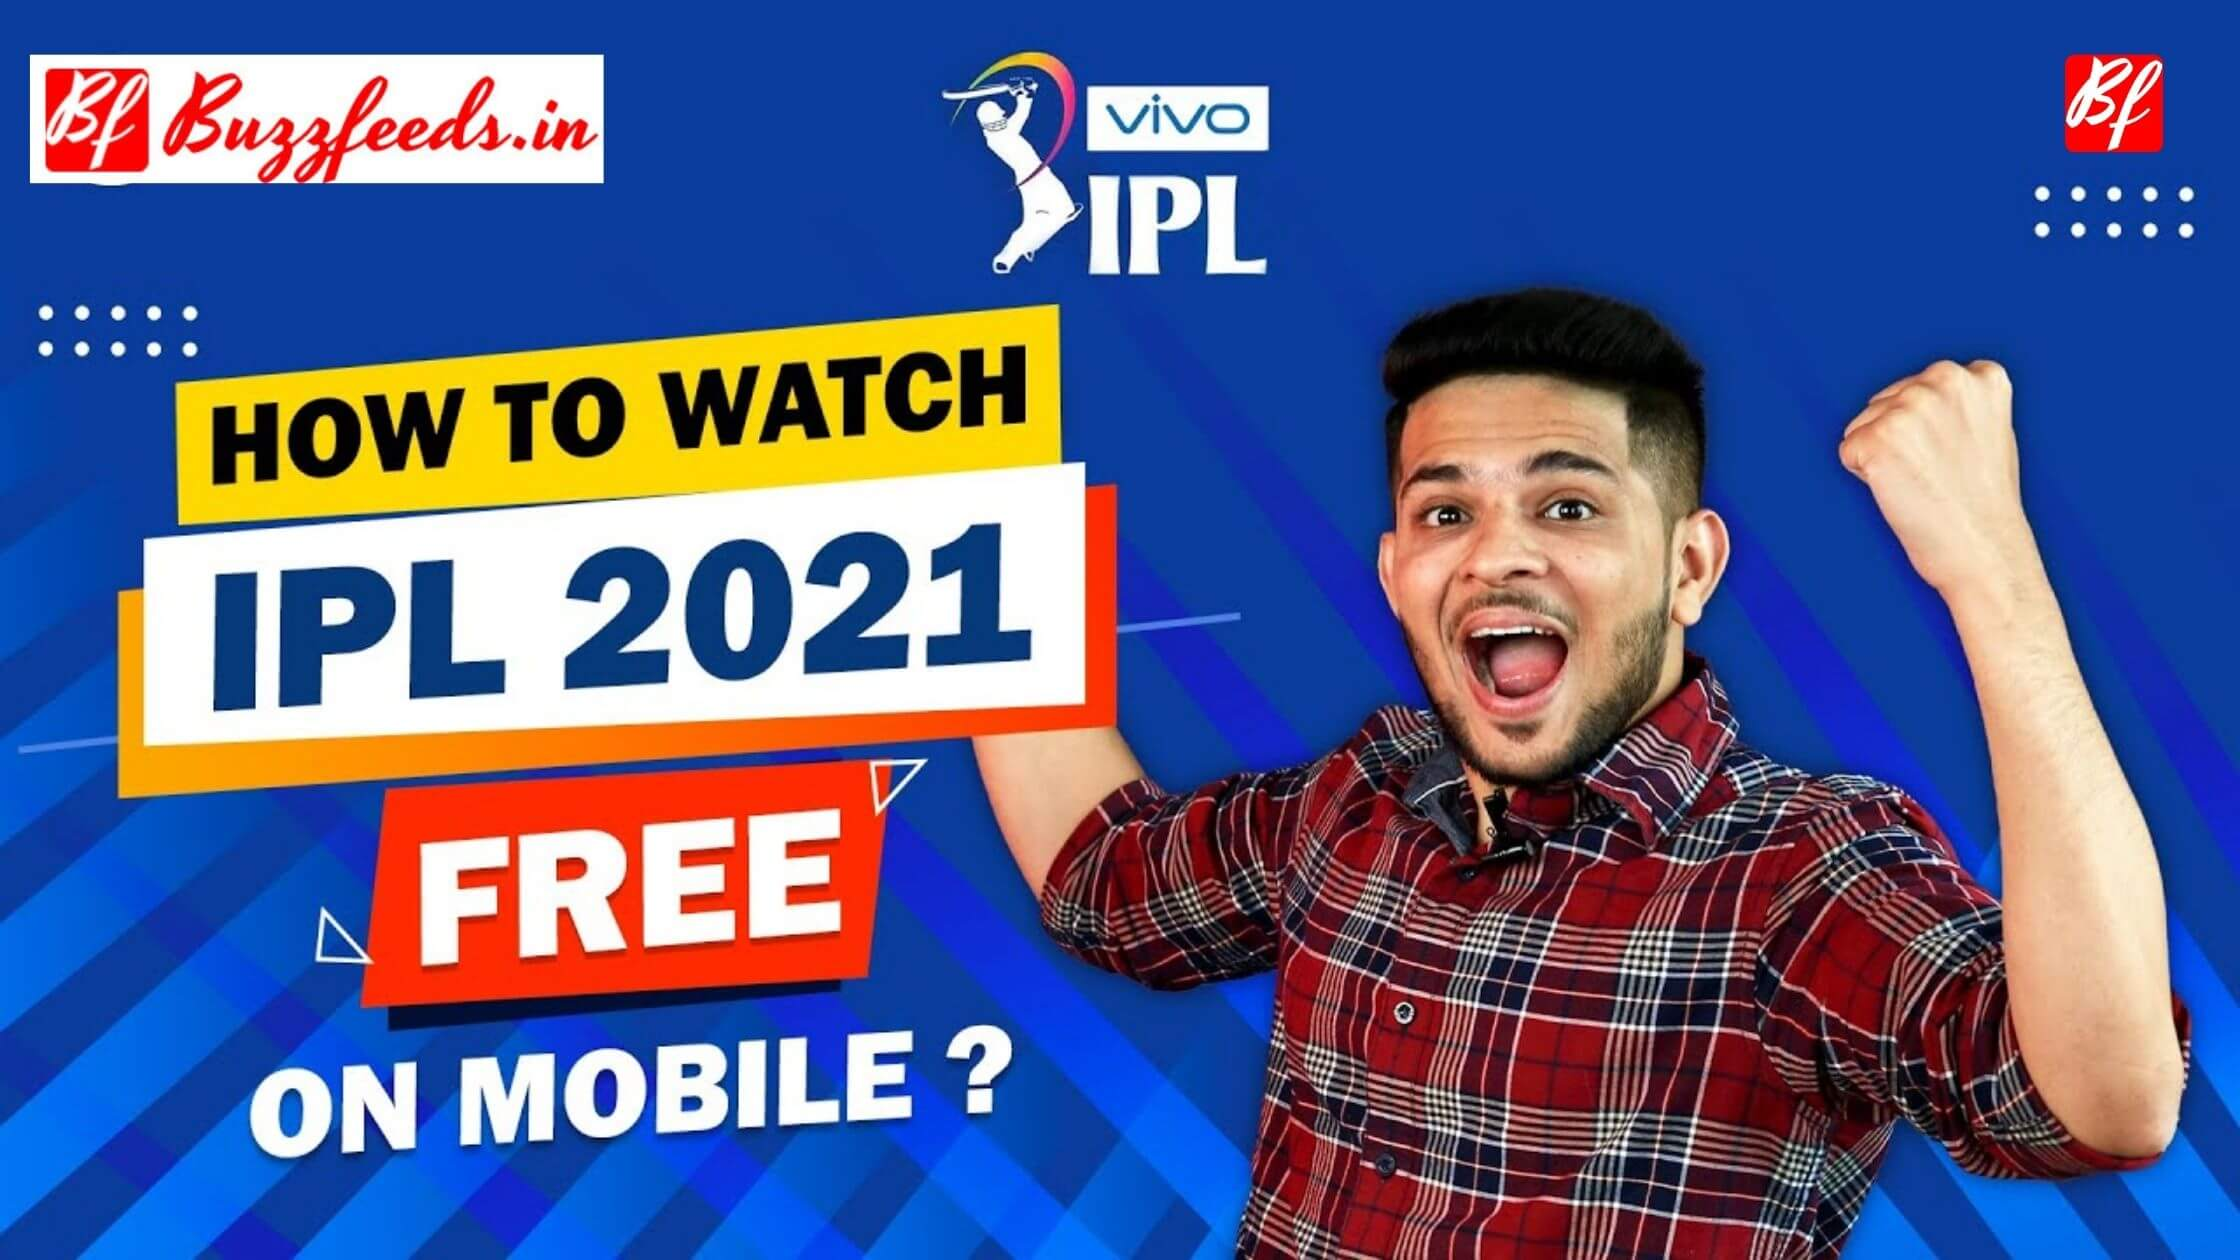 How to watch IPL 2021 LIVE matches online for free?